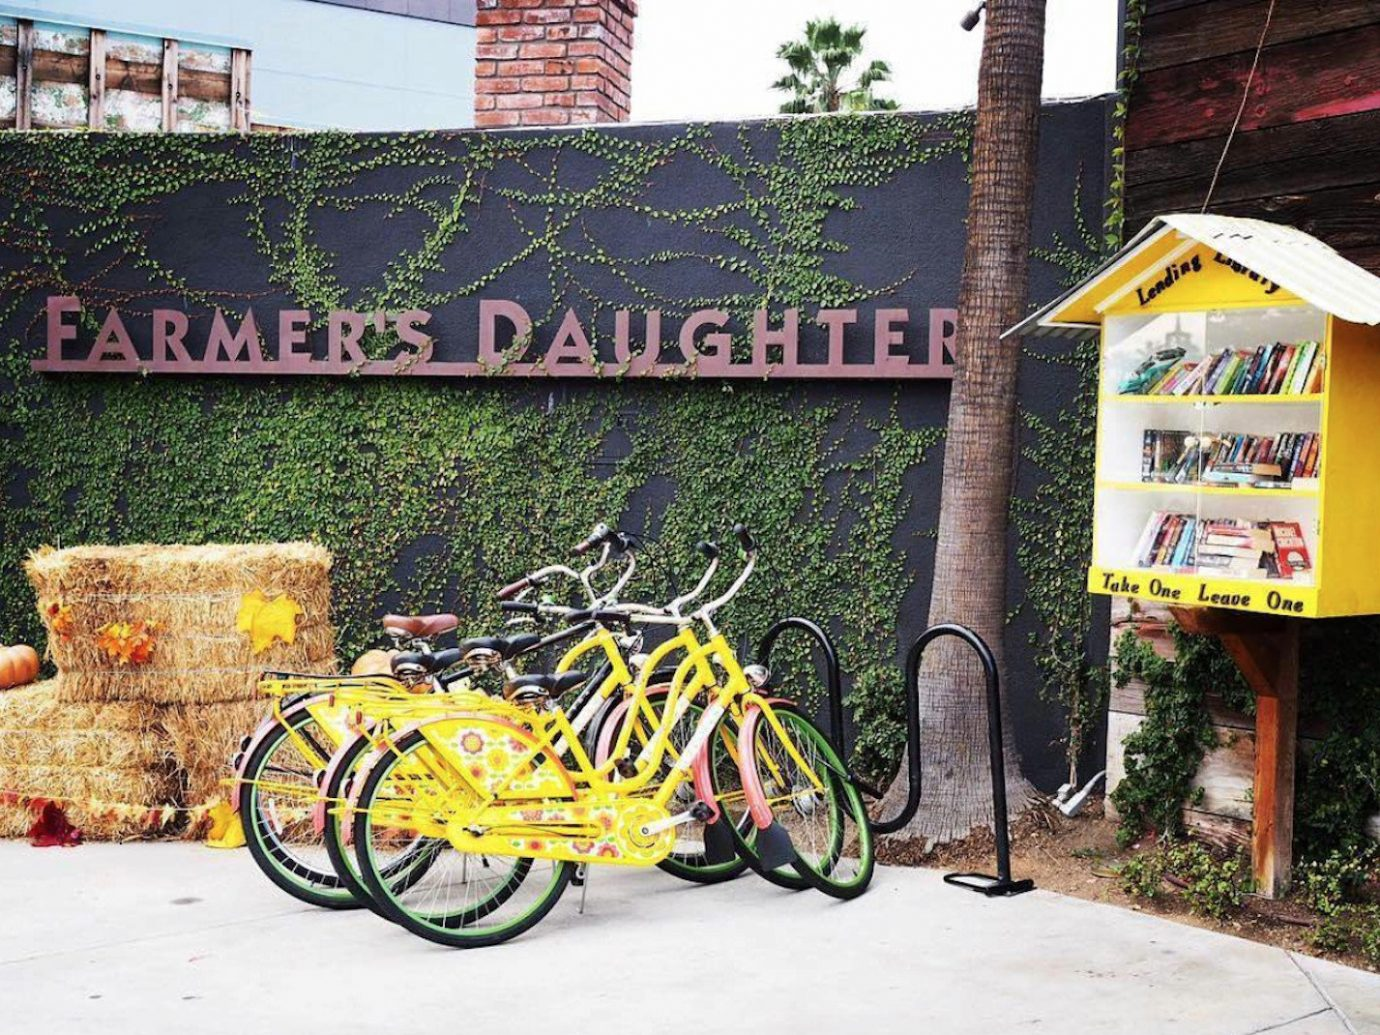 Hotels Style + Design Trip Ideas outdoor bicycle land vehicle ground yellow vehicle wall road bicycle neighbourhood recreation tree parked plant house mural cart pulling